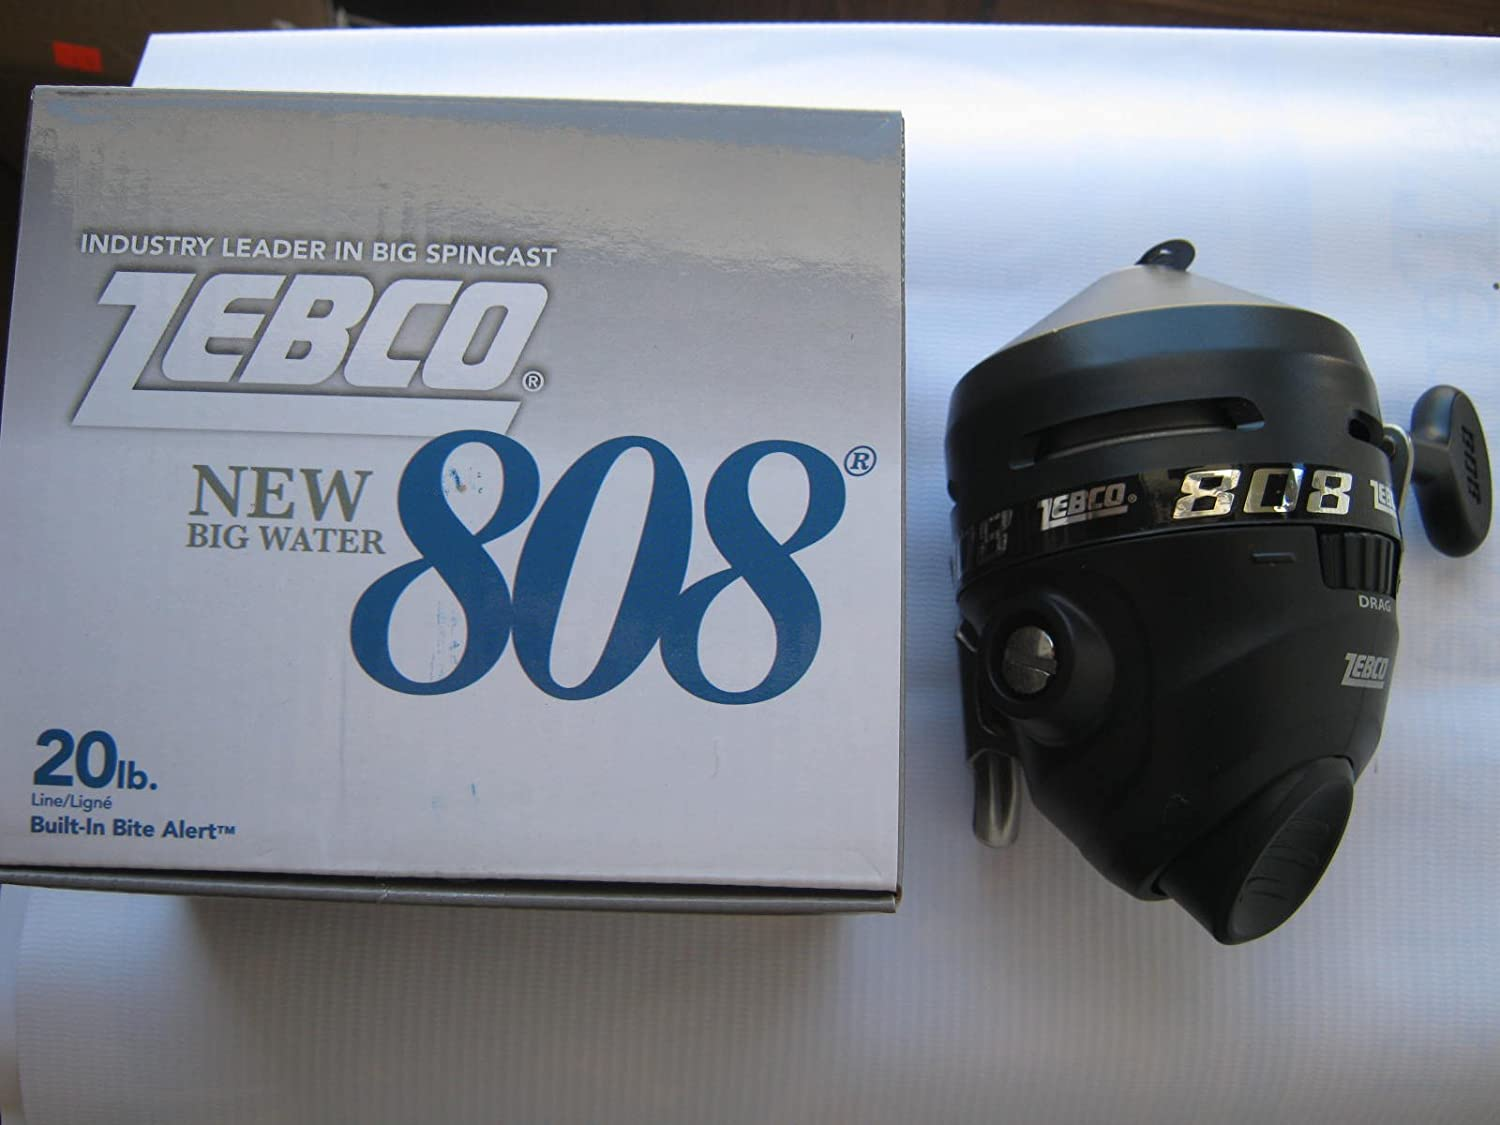 ZEBCO 808 BIG WATER SPIN CAST REEL